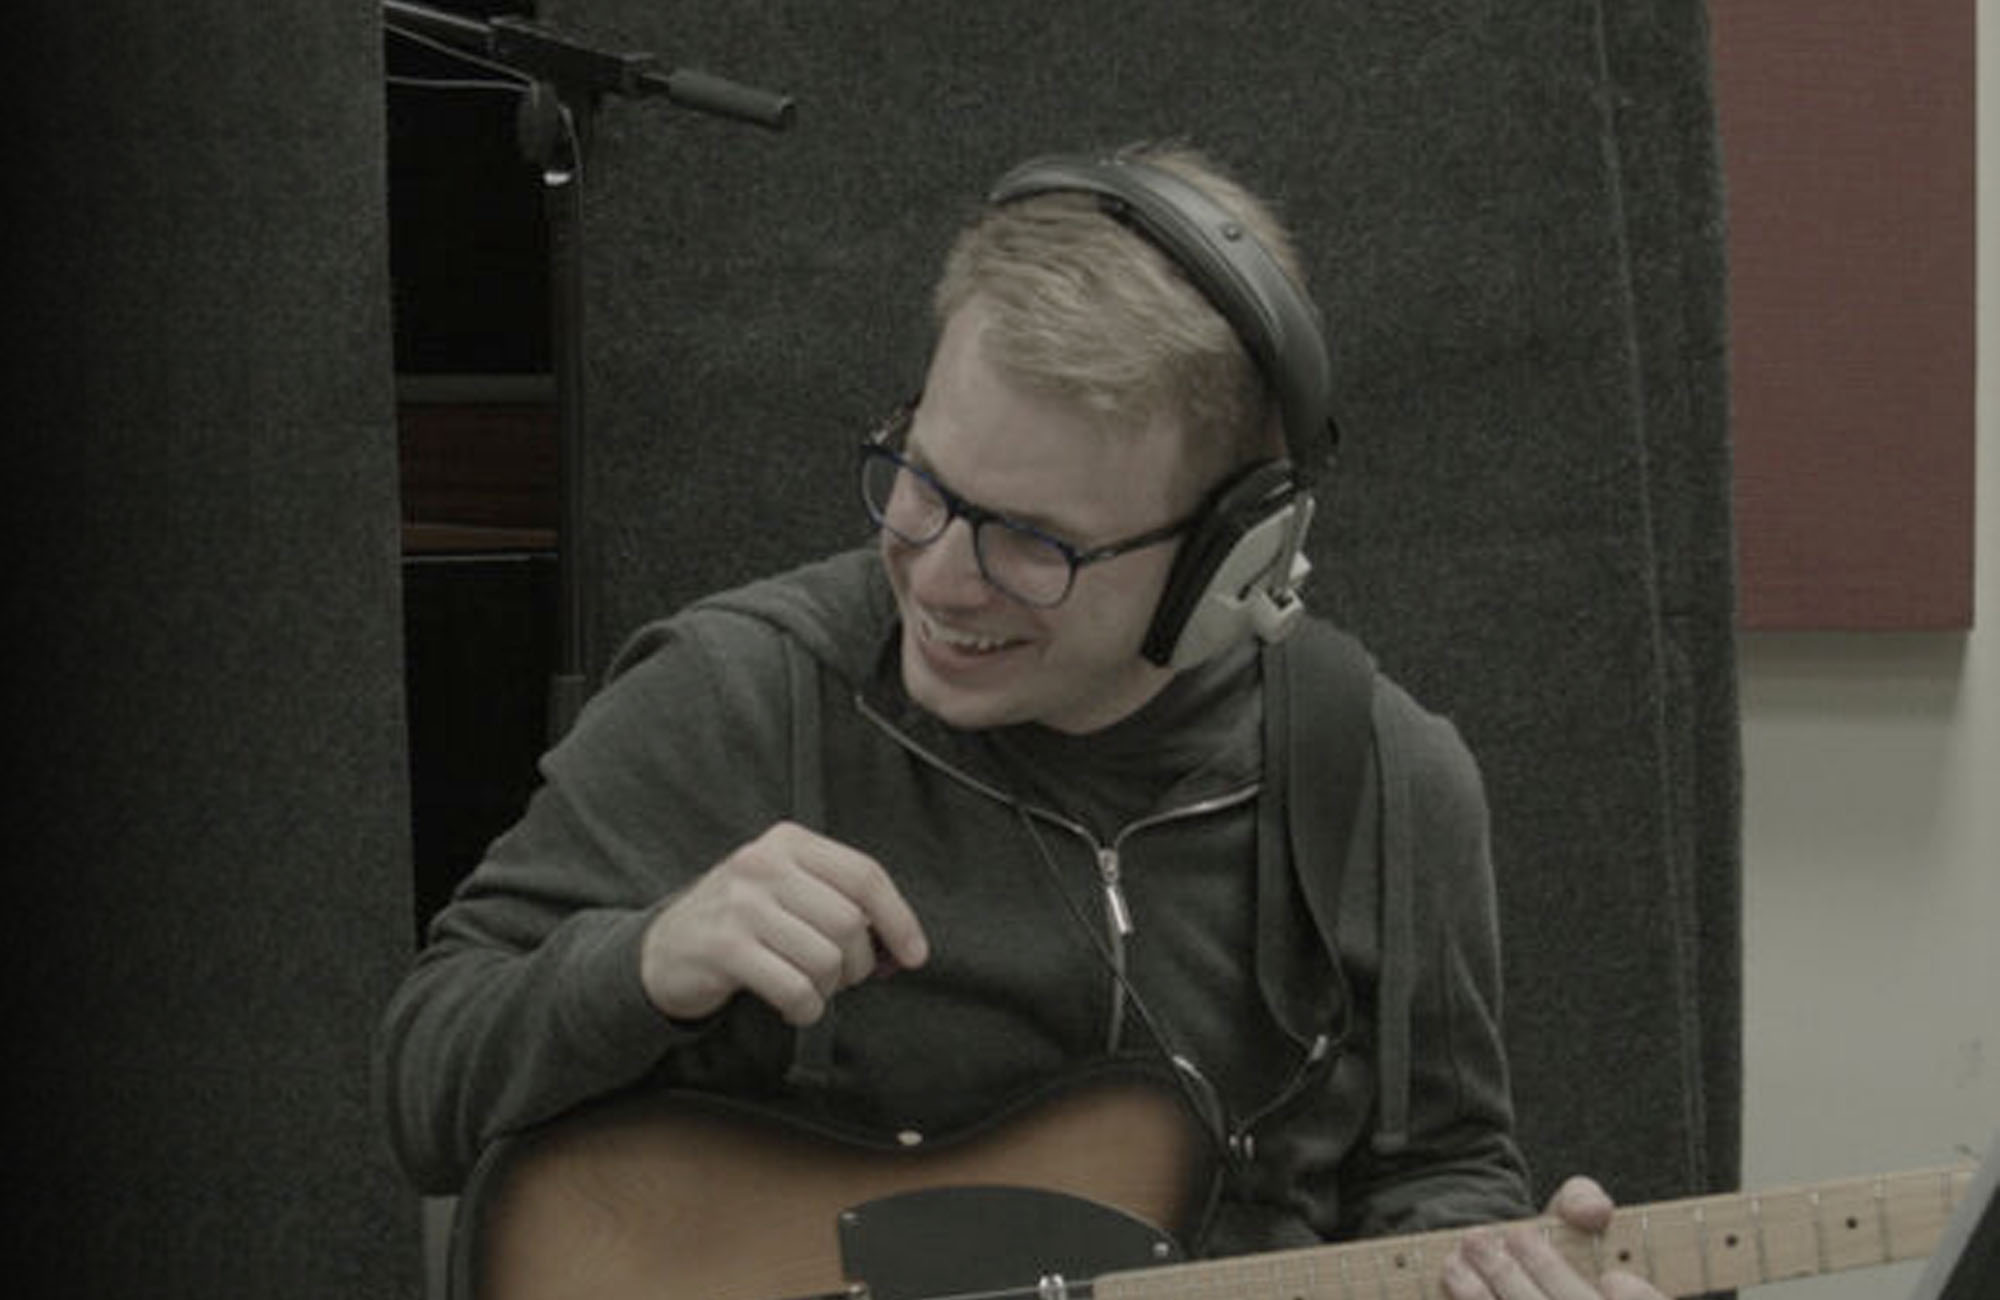 image of Chris Cresswell holding guitar and wearing headphones